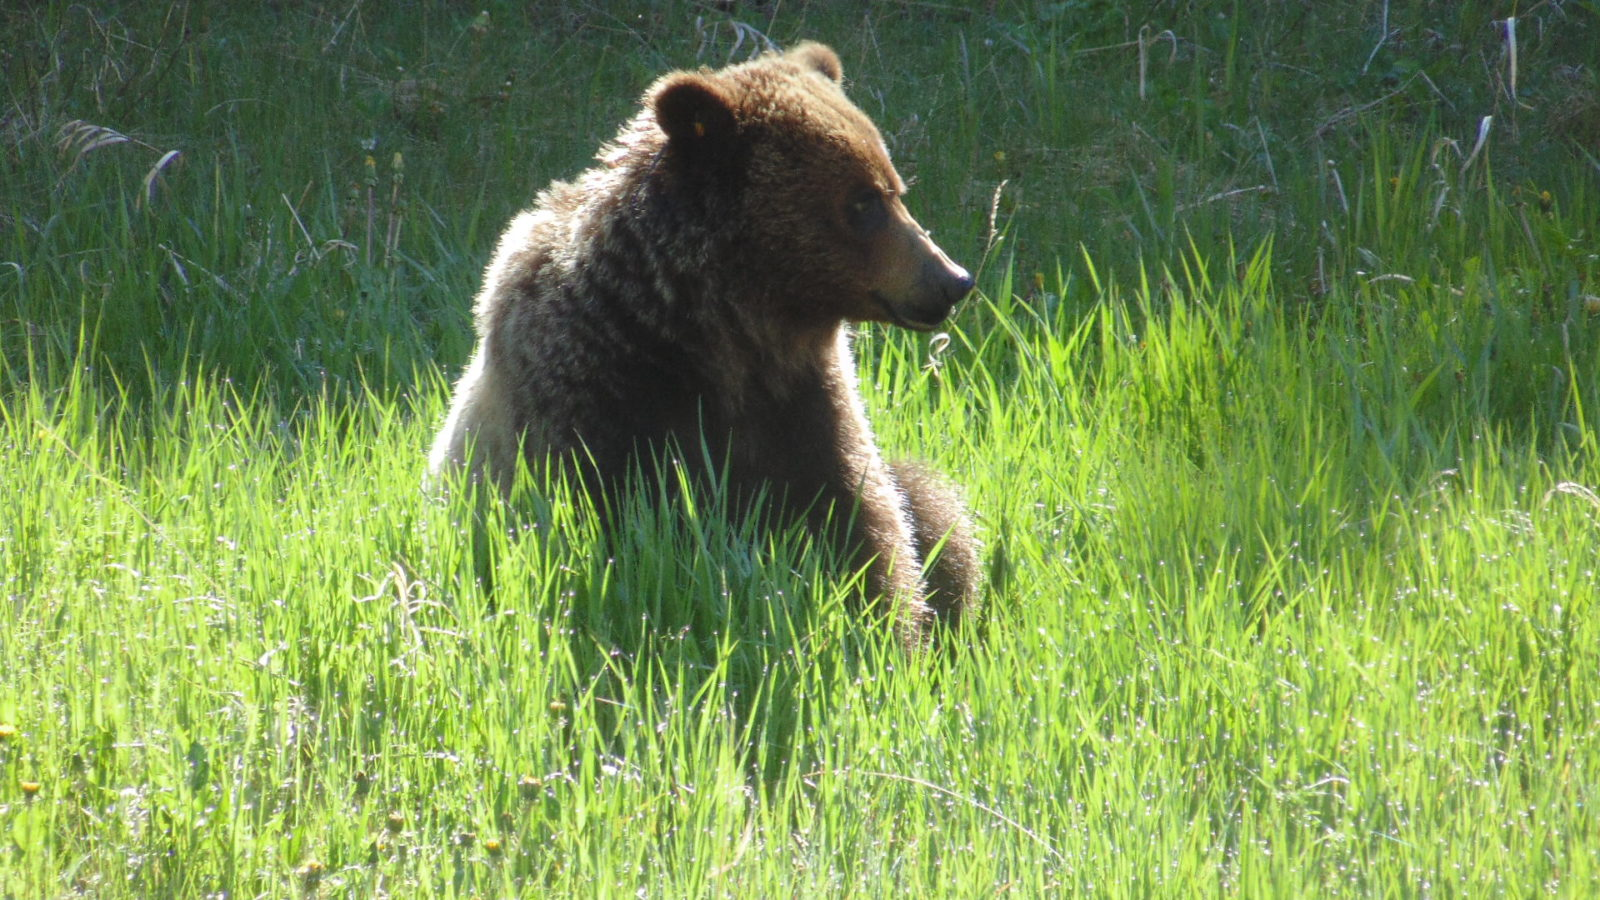 Wildlife Photography: Grizzly Bear in Kananaskis County